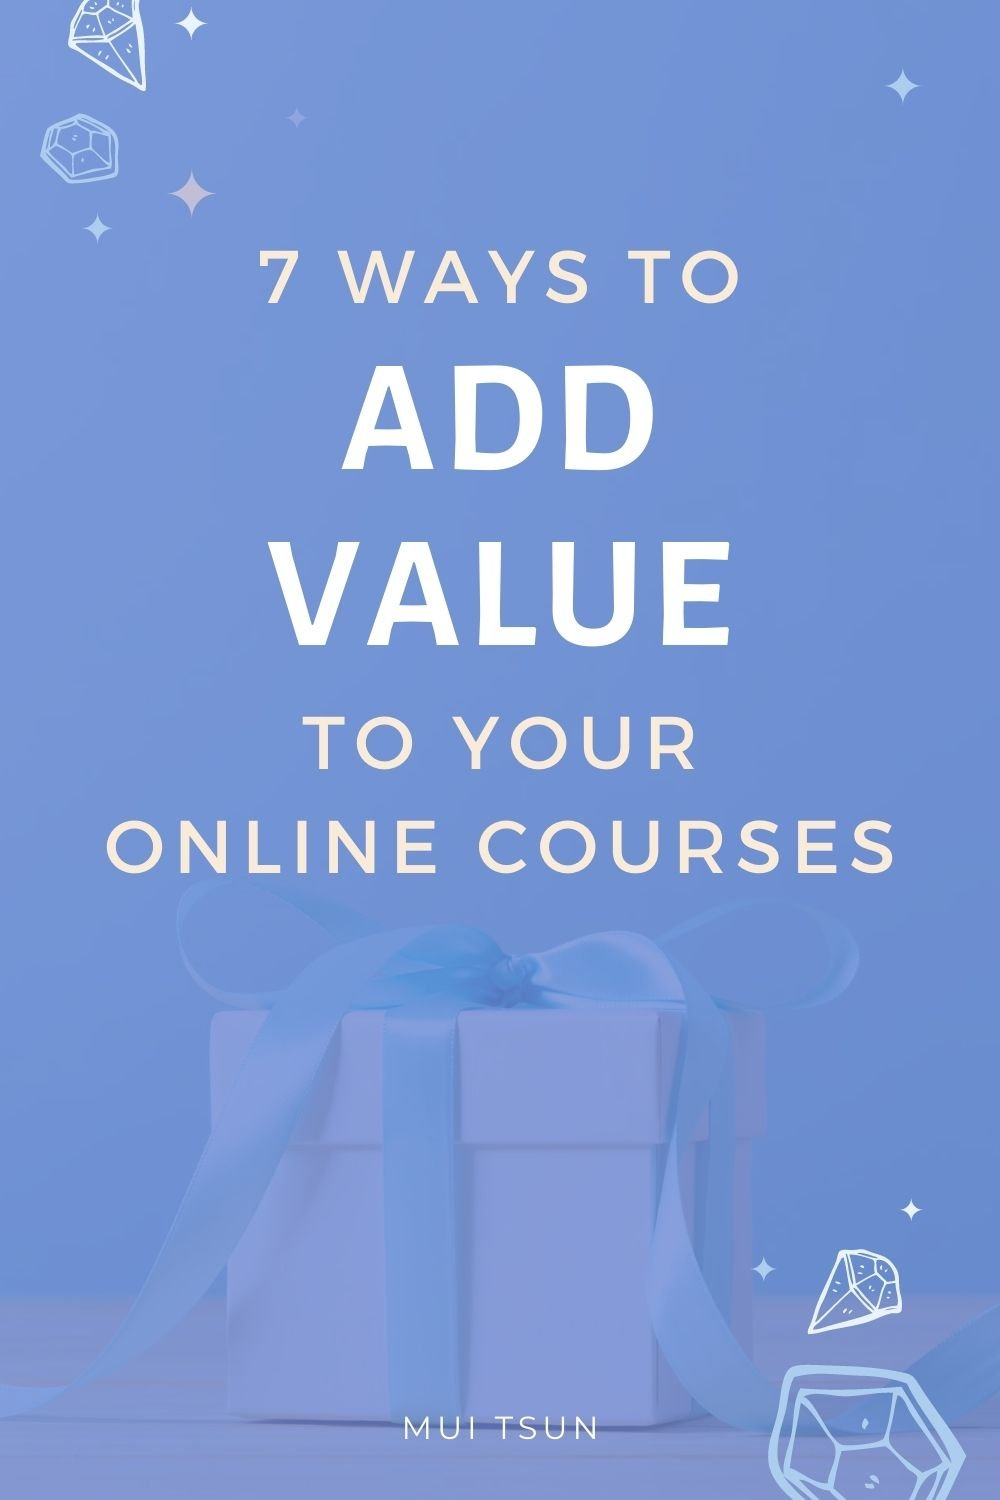 7 Ways to Add Value to Your Online Courses